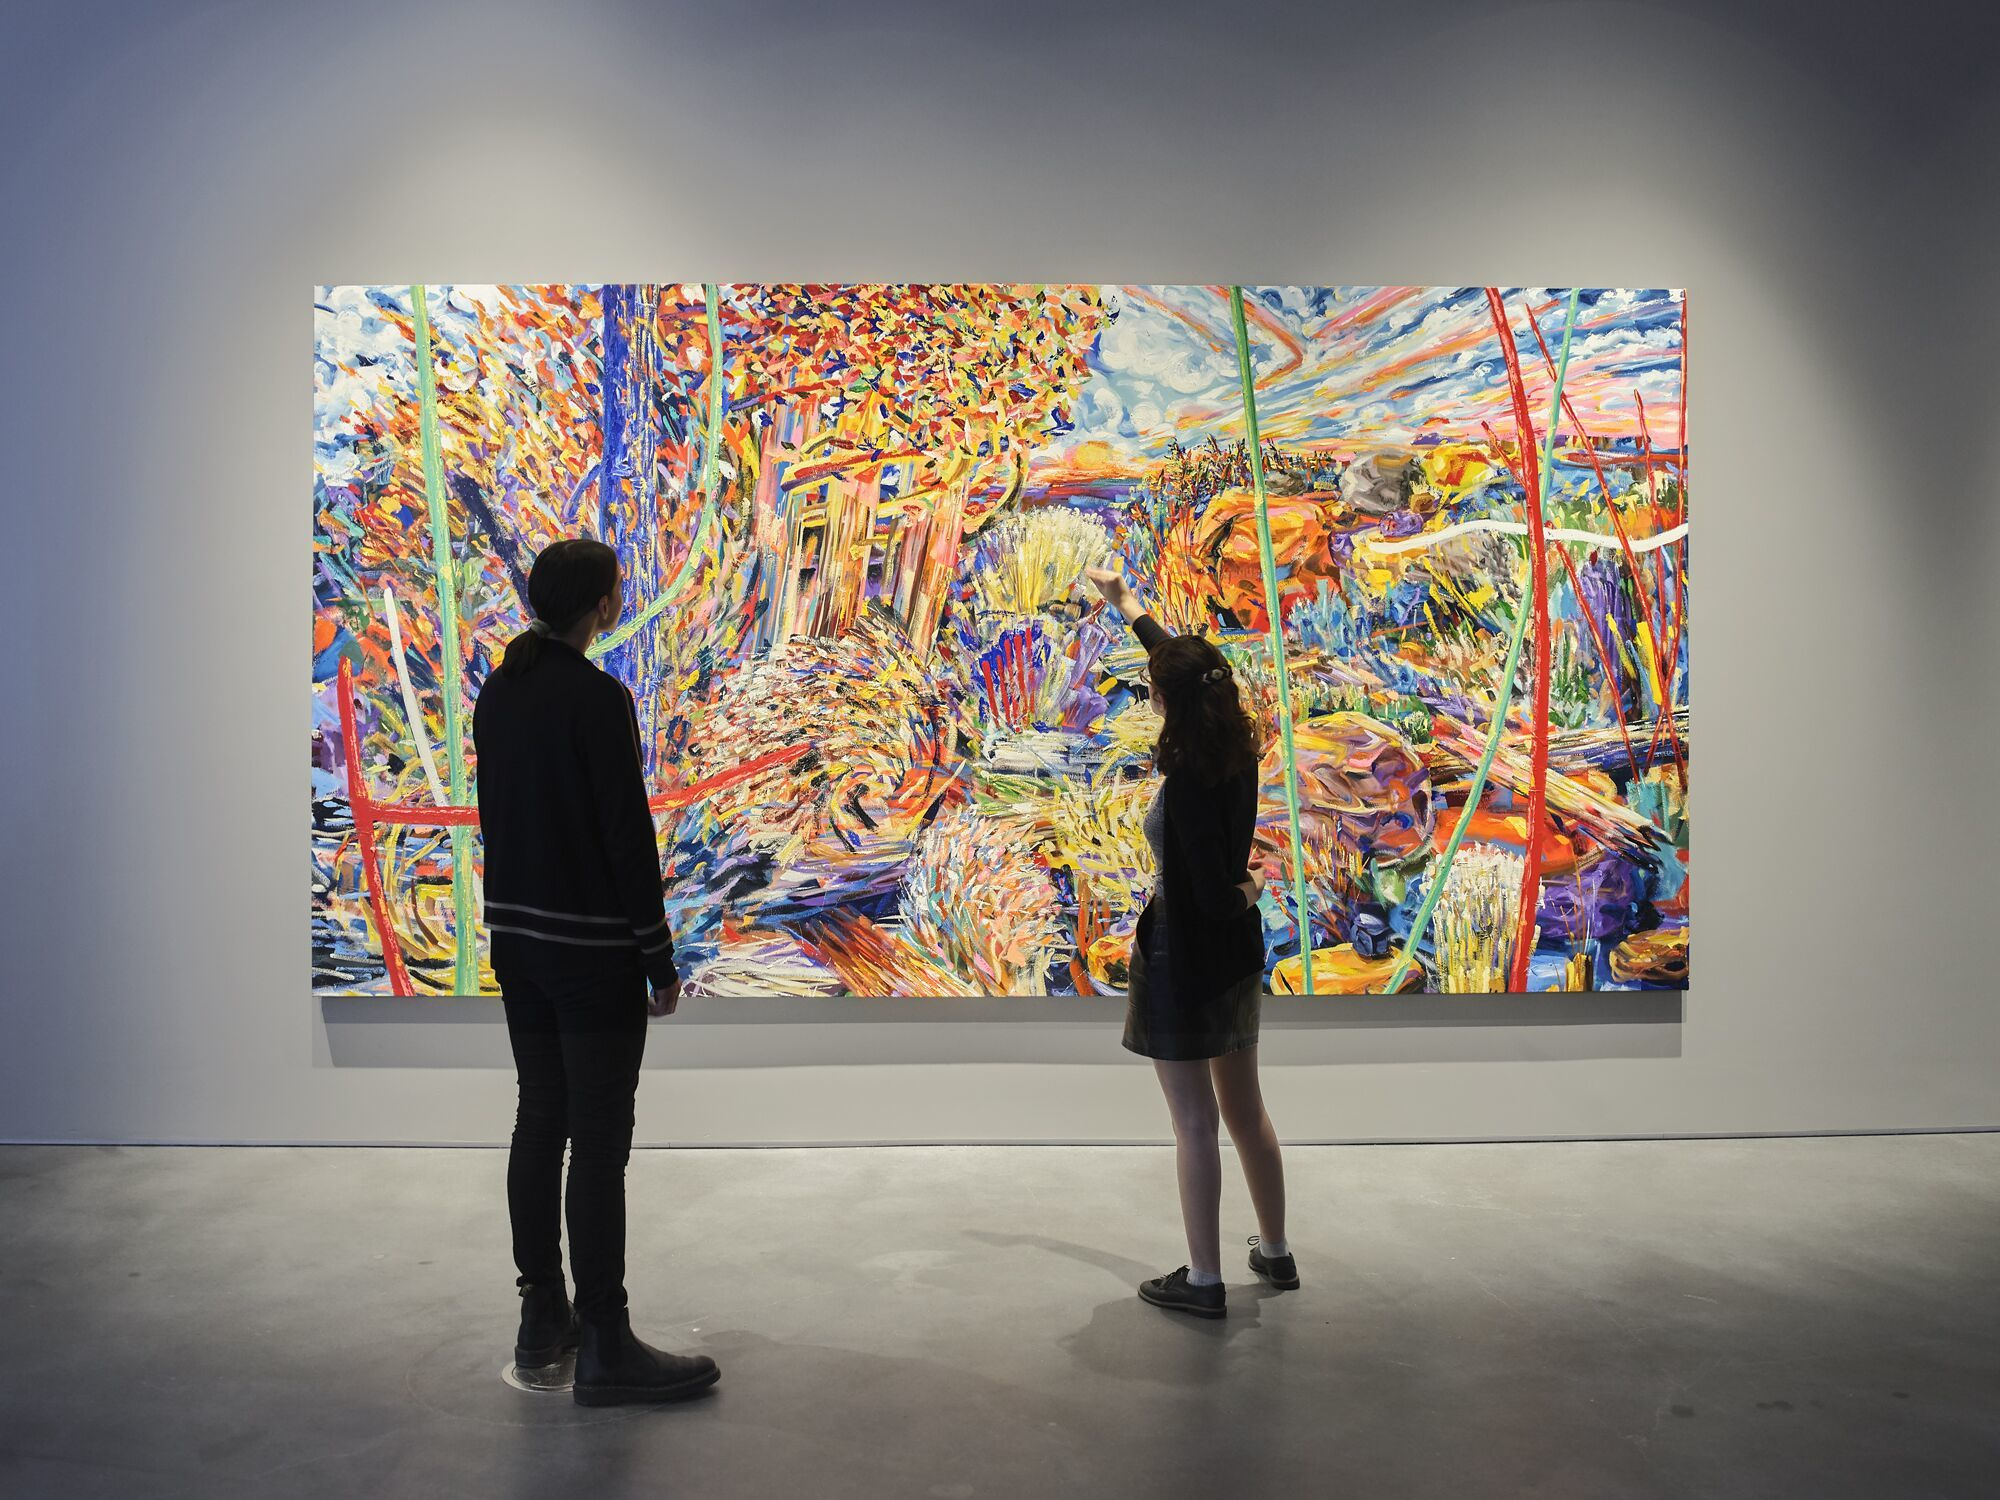 Two figures stand in front of a large, colorful and abstract landscape painting